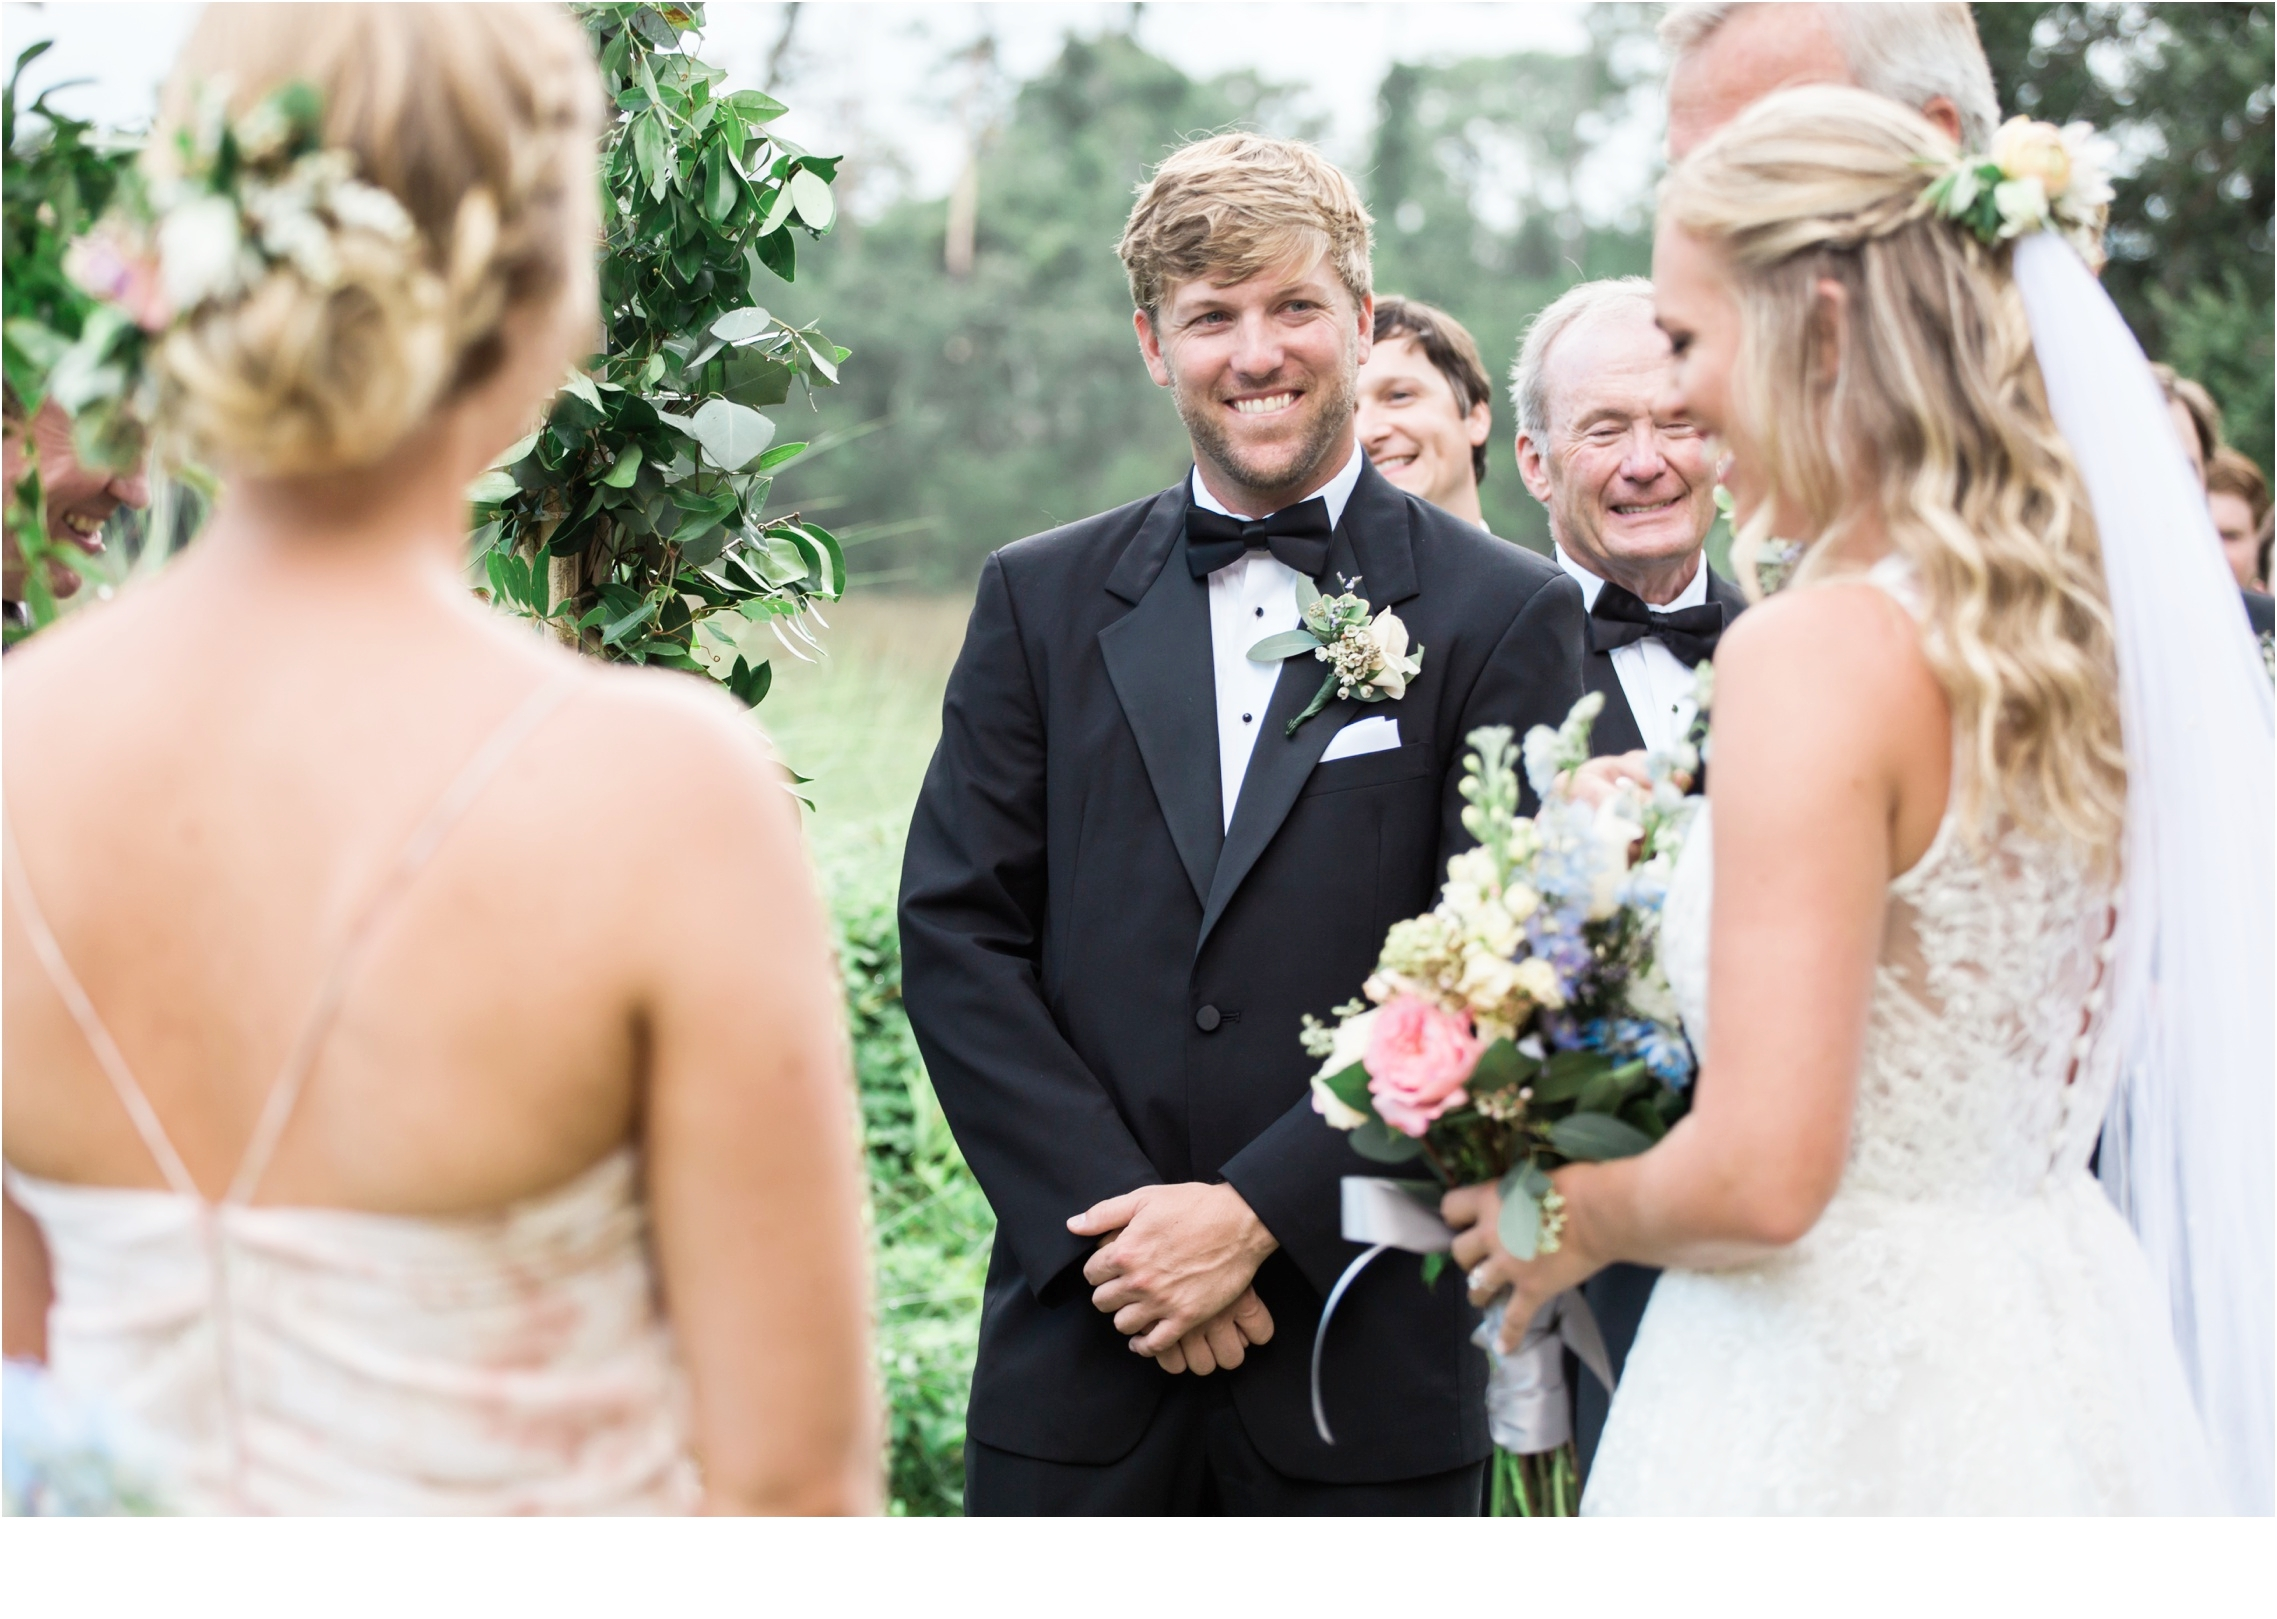 Rainey_Gregg_Photography_St._Simons_Island_Georgia_California_Wedding_Portrait_Photography_0071.jpg